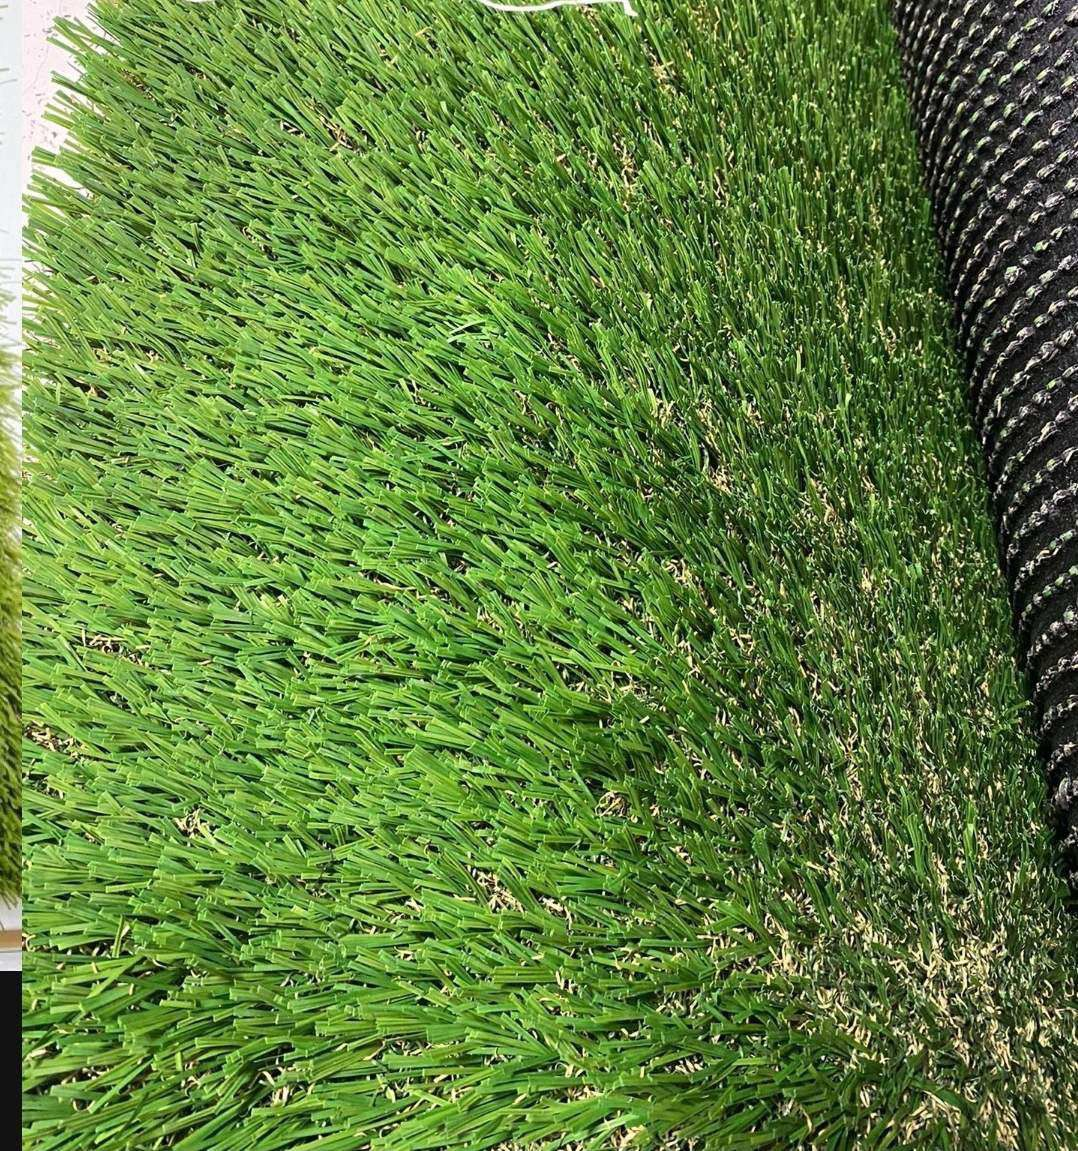 BRAND NEW turf!!! 🔥 Starting at $1.09 PSF